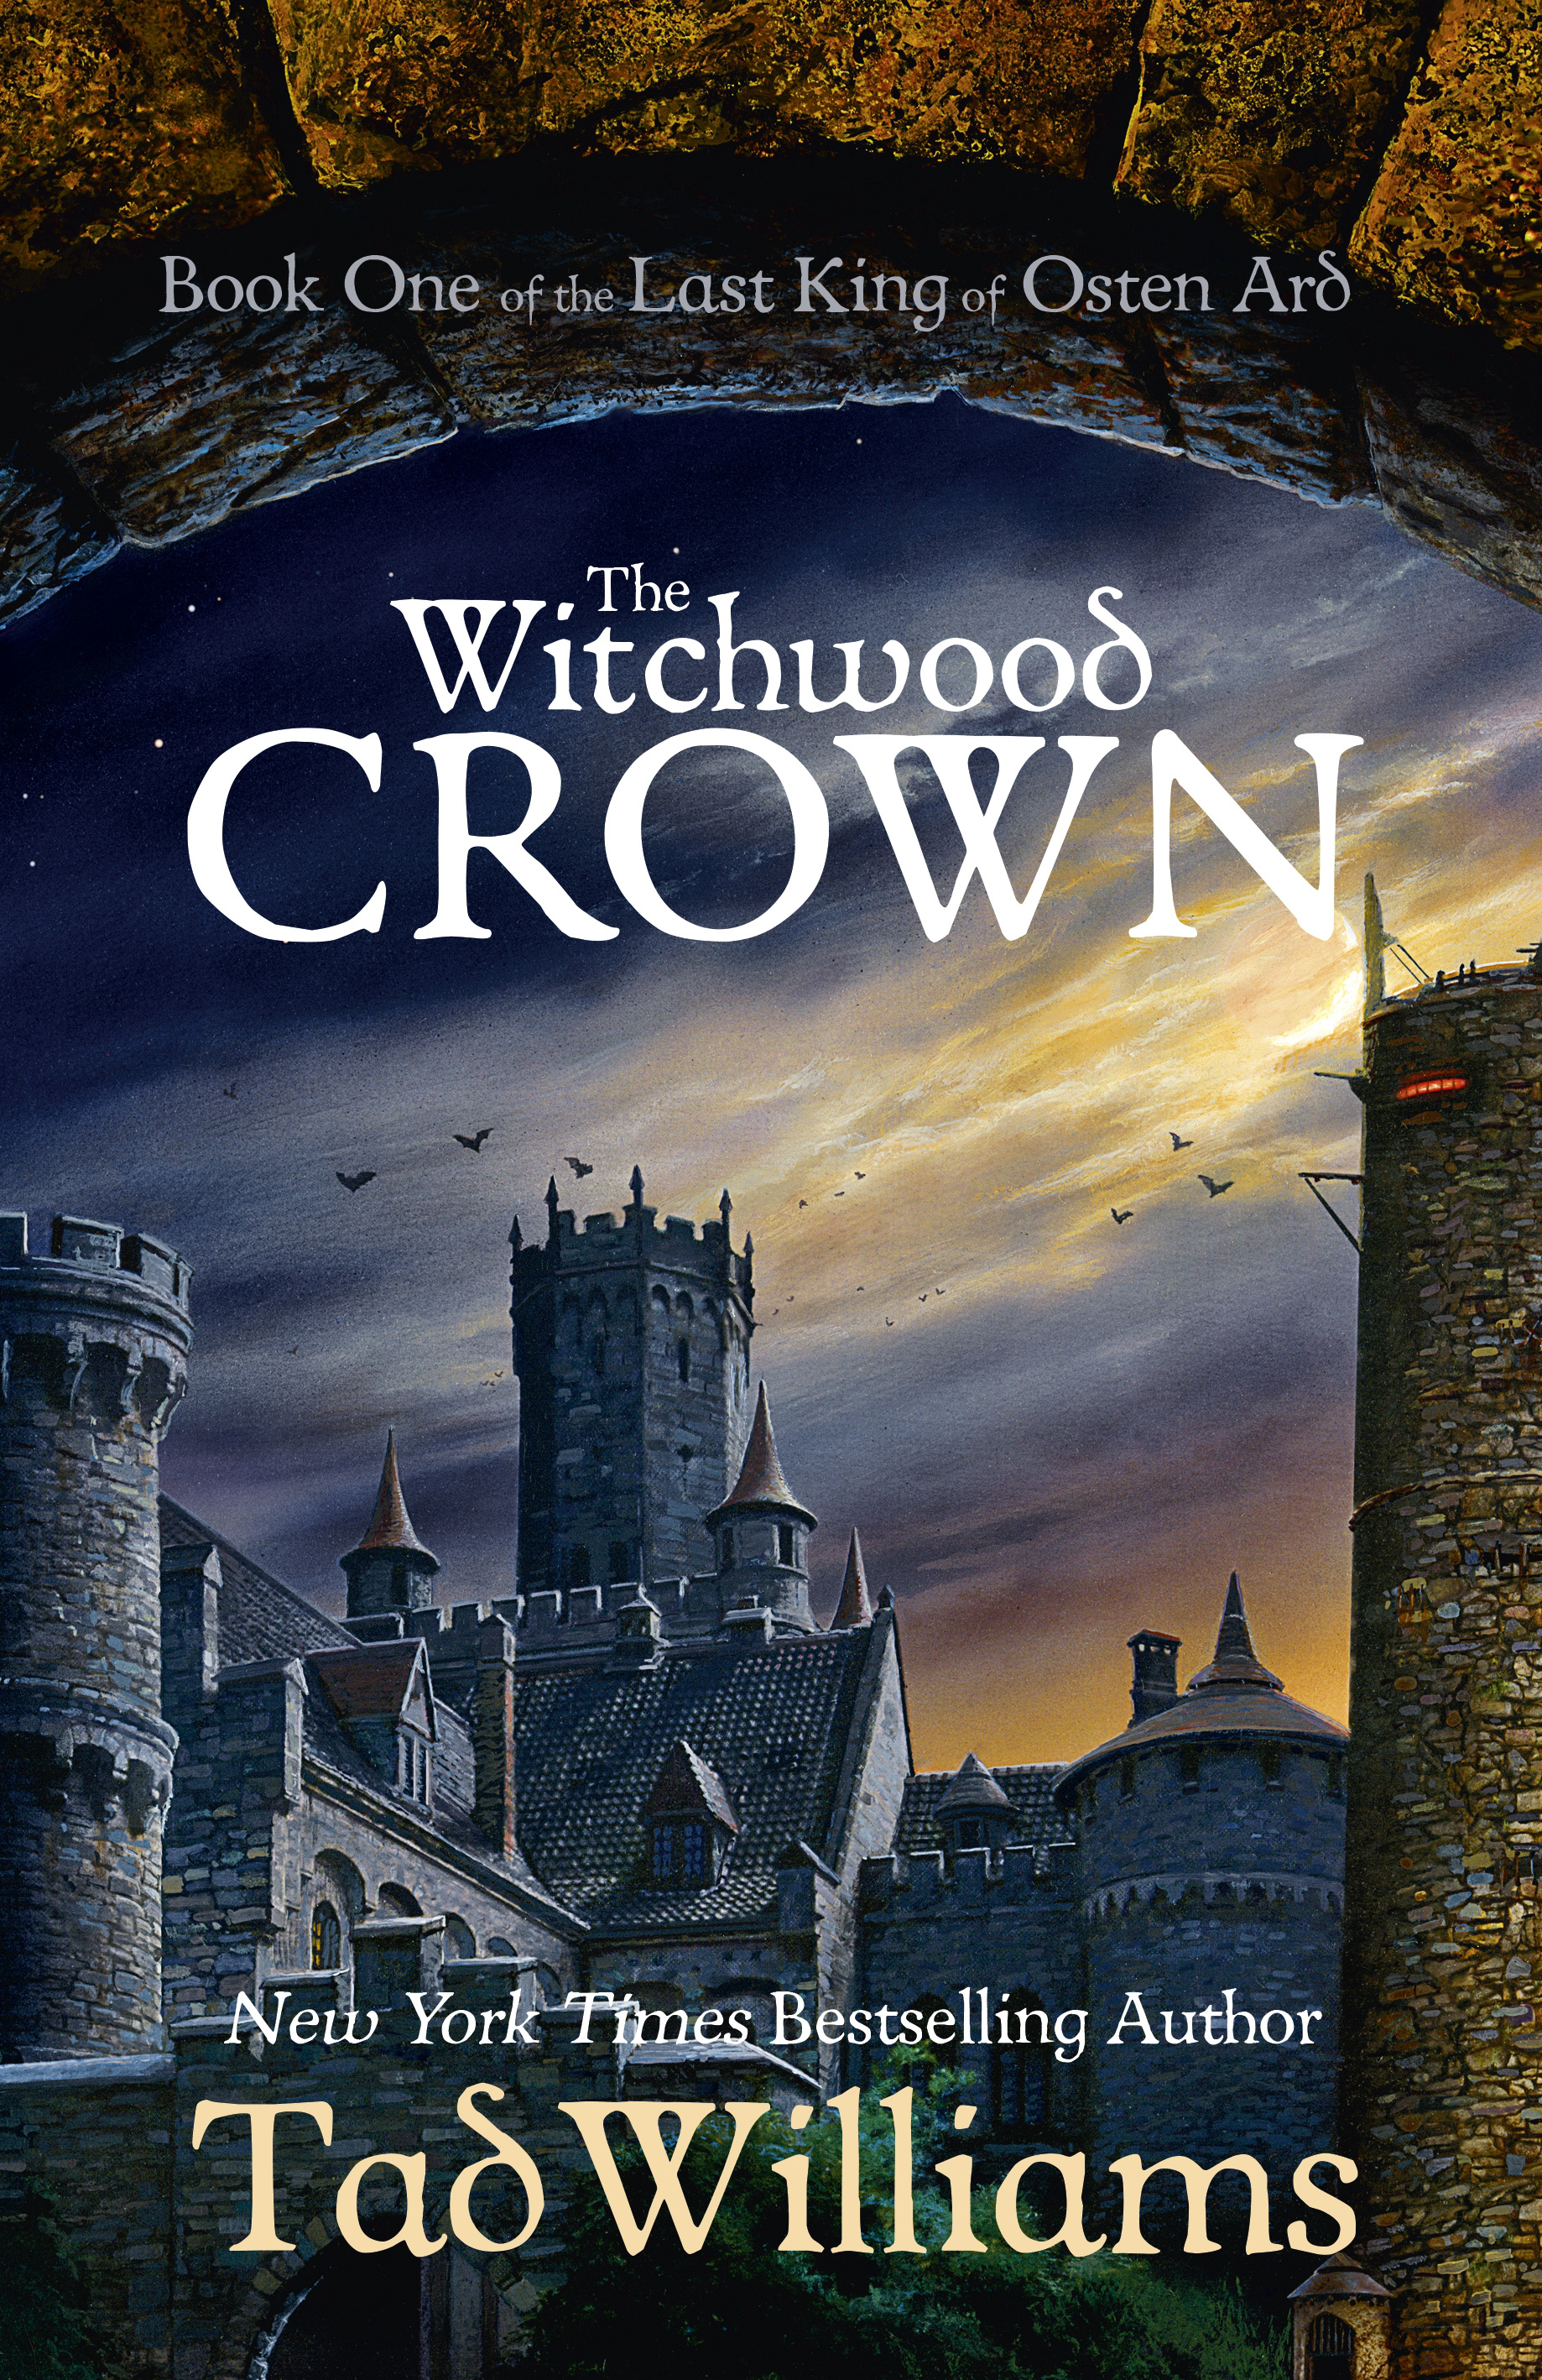 The Witchwood Crown: Book One of The Last King of Osten Ard by Tad Williams, ISBN: 9781473603219